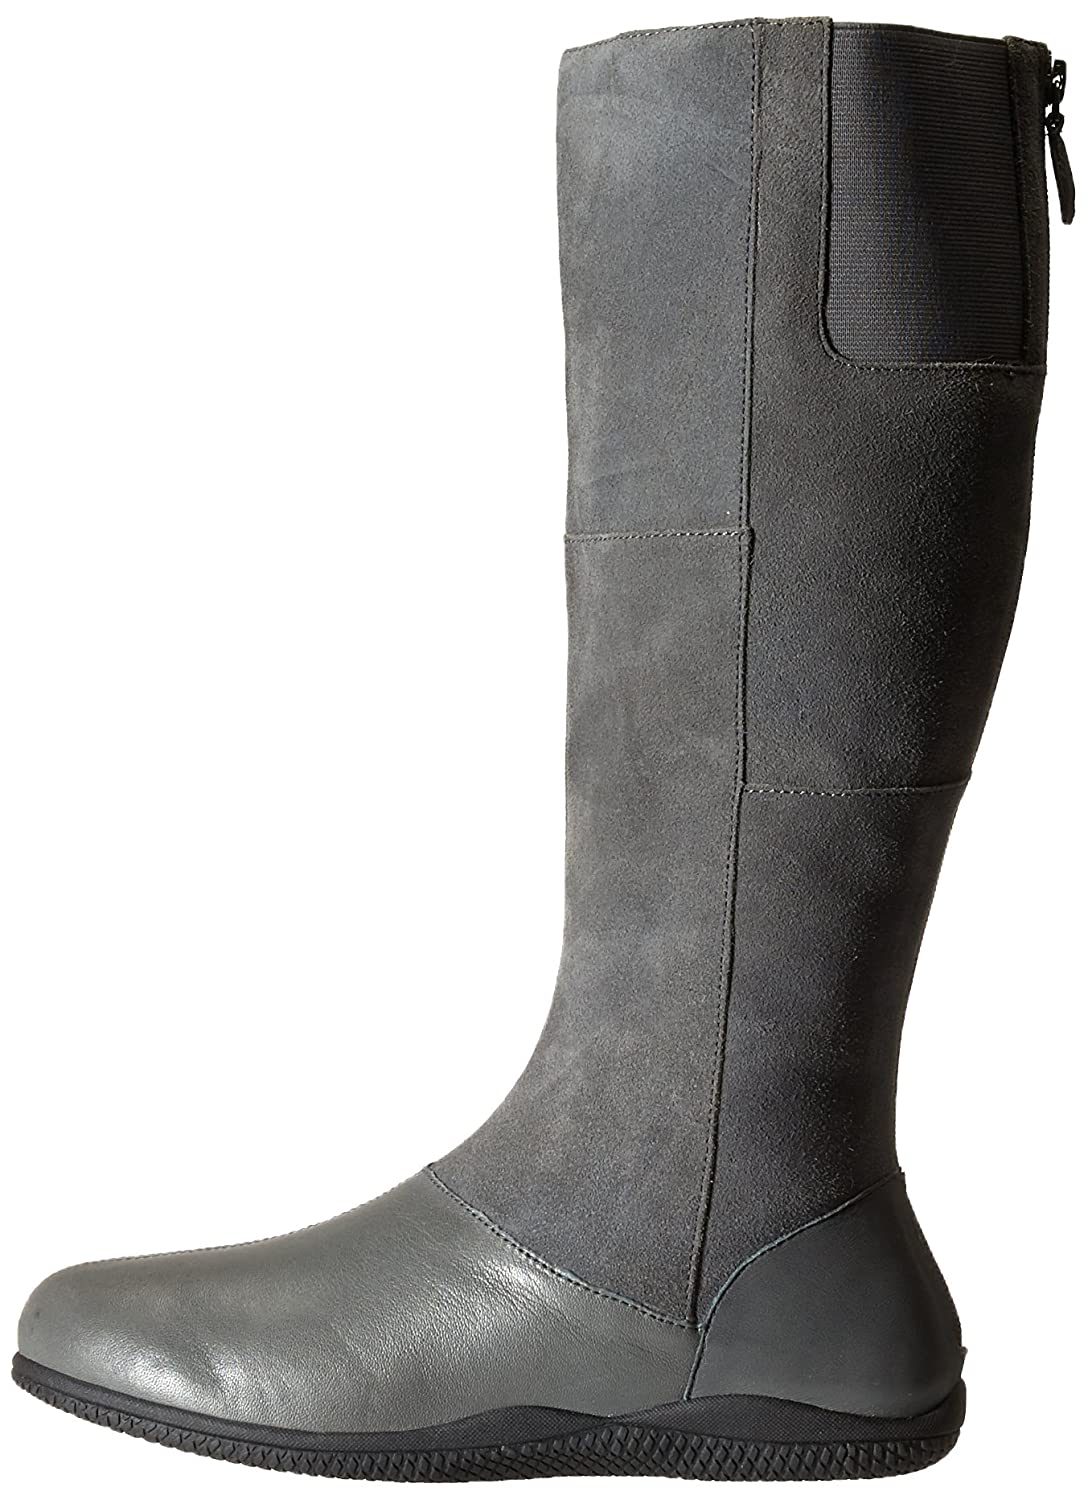 SoftWalk Women's Hollywood Winter Boot B00S01F1PA 8.5 B(M) US|Grey